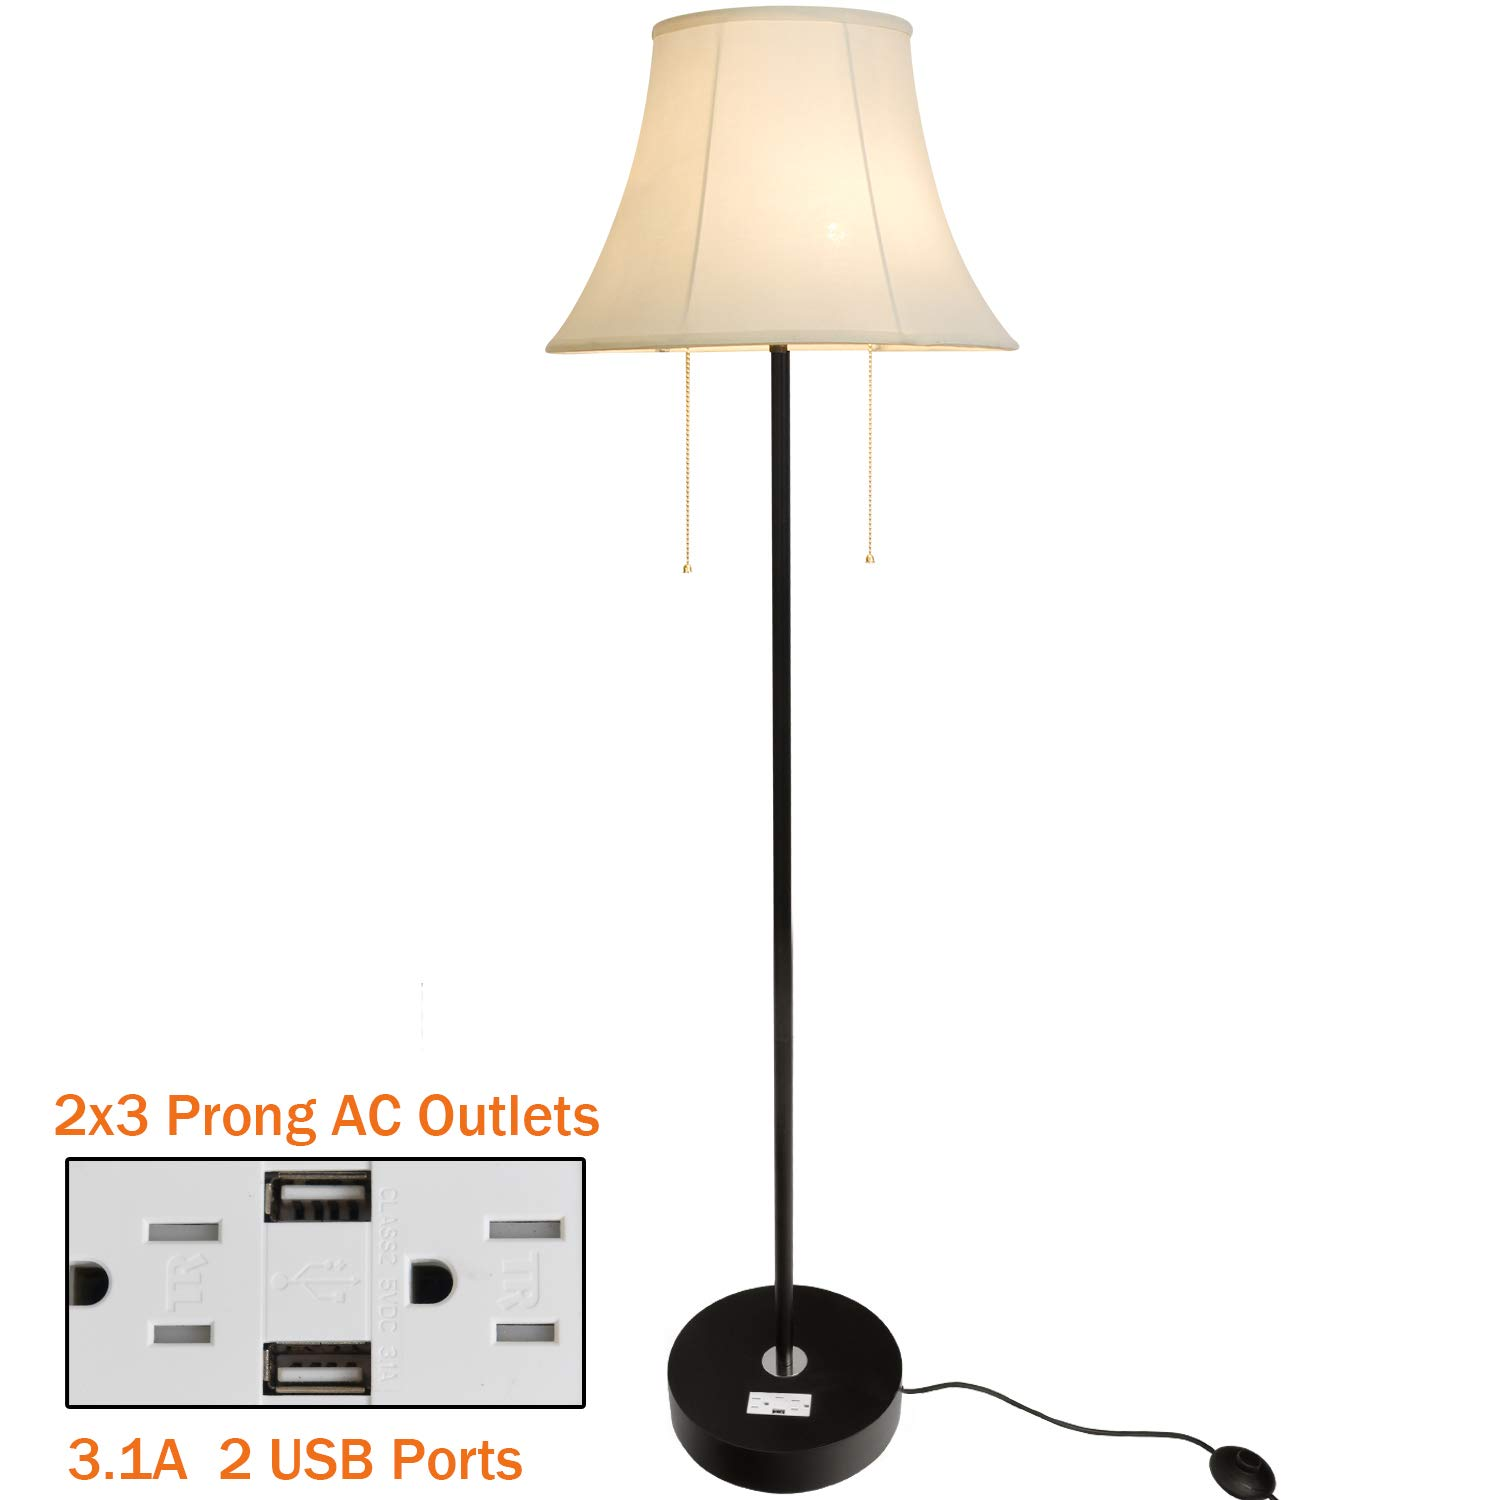 Floor Lamp, Briever Multi-Functional Standing Light with 2 USB Charging Ports 2 AC Outlets, 2 Light Modern Standing Pole Lamp with Beige Fabric Shade Perfect for Living Room,Bedrooms, Office